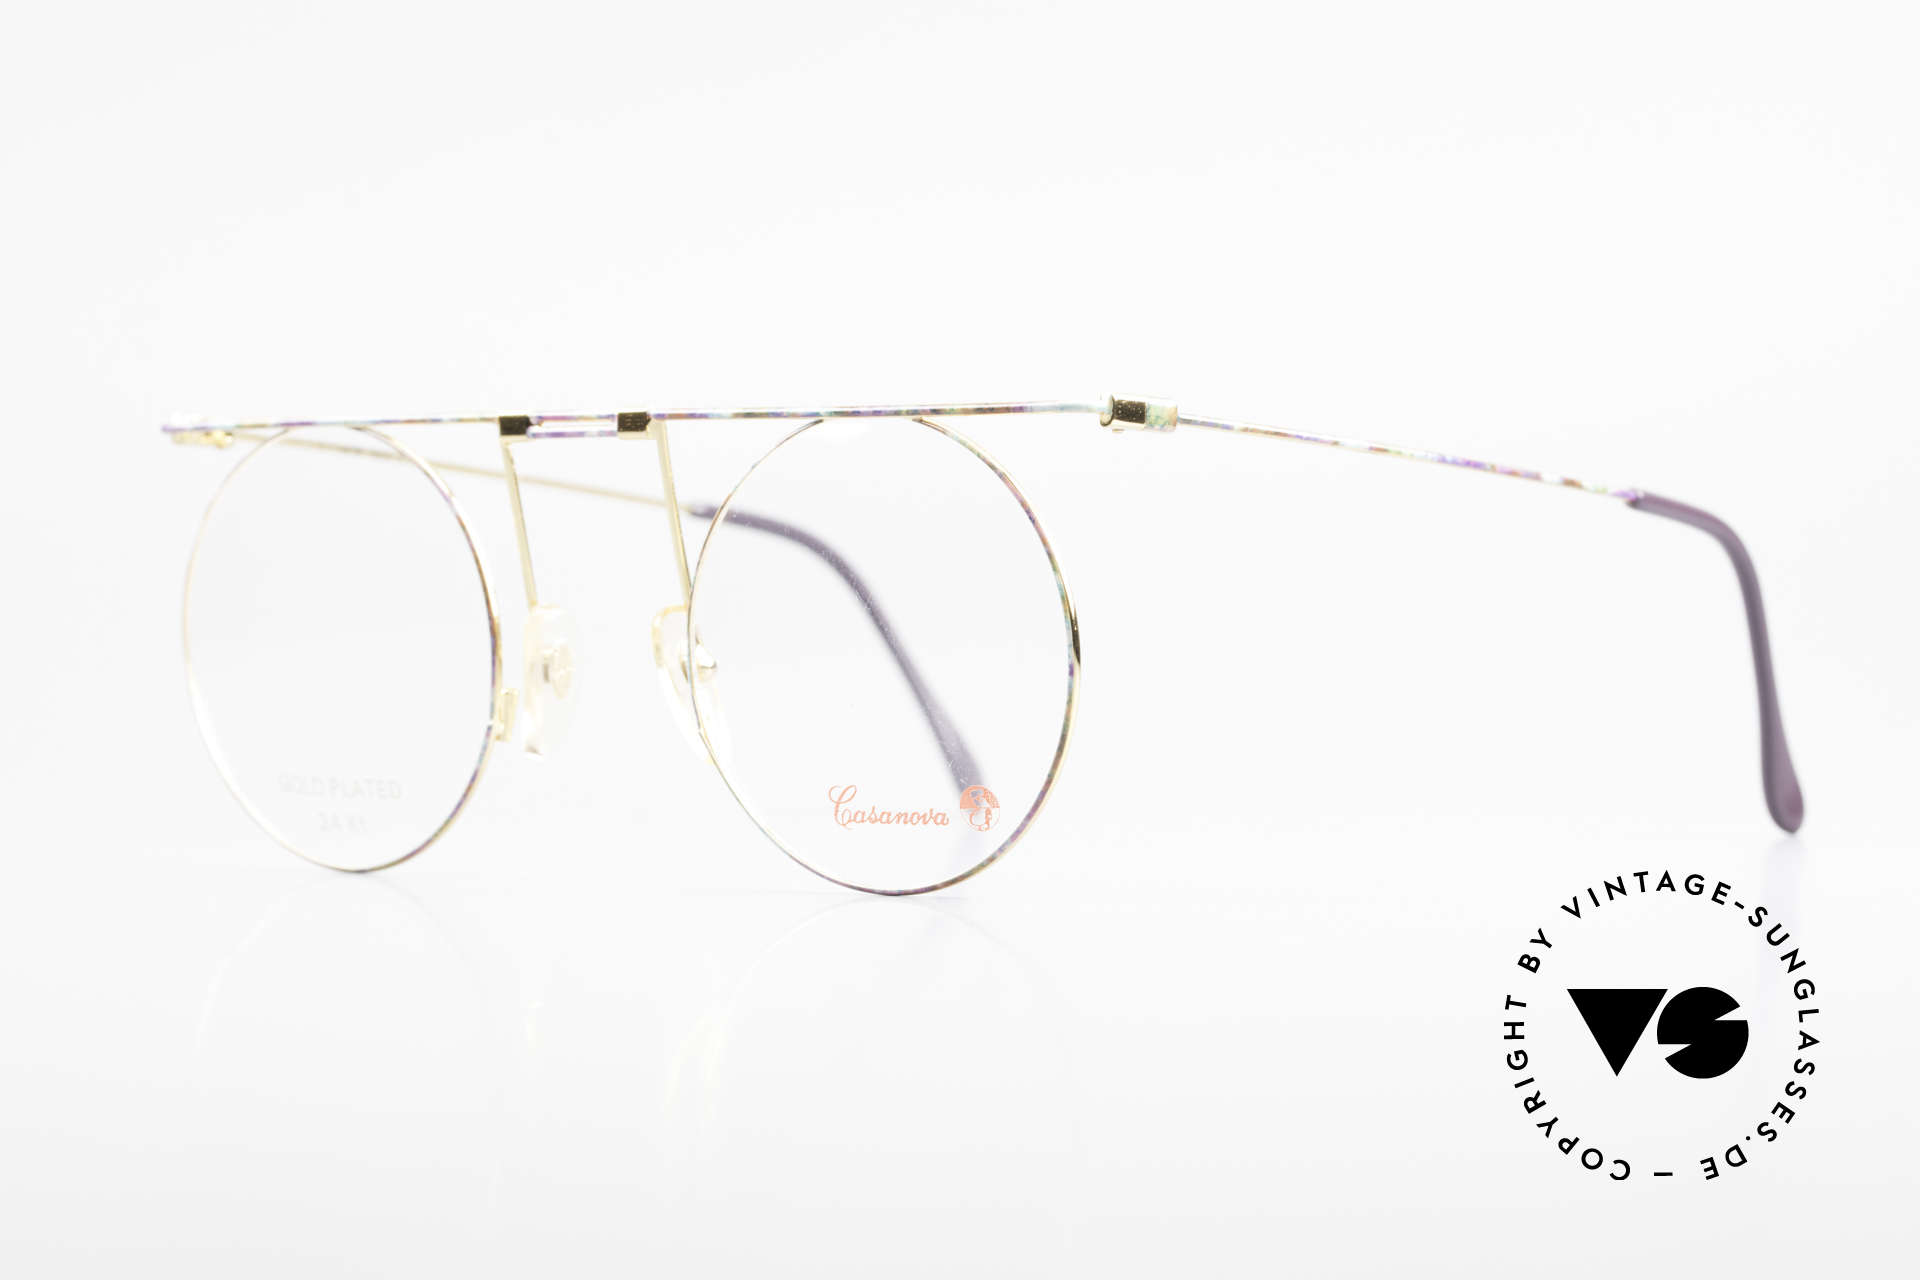 Casanova MTC 7 24Kt Gold Plated Frame, 24Kt gold-plated frame; DEMO lenses can be replaced, Made for Women